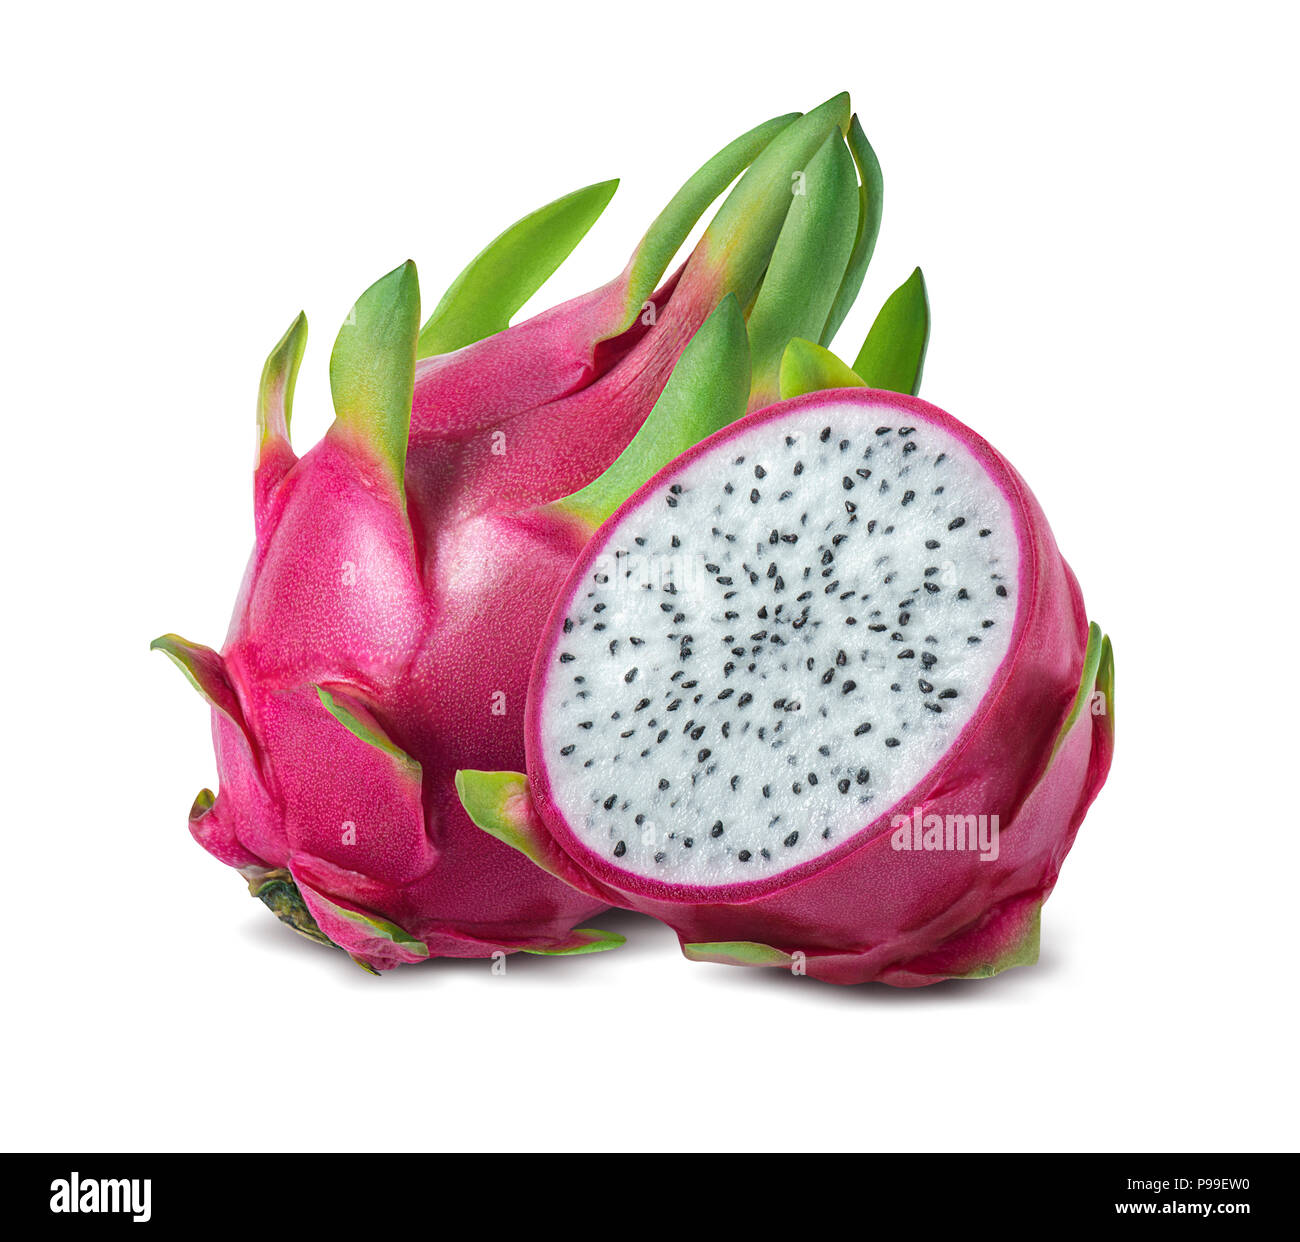 Dragon fruit or pitaya isolated on white background as package design element - Stock Image